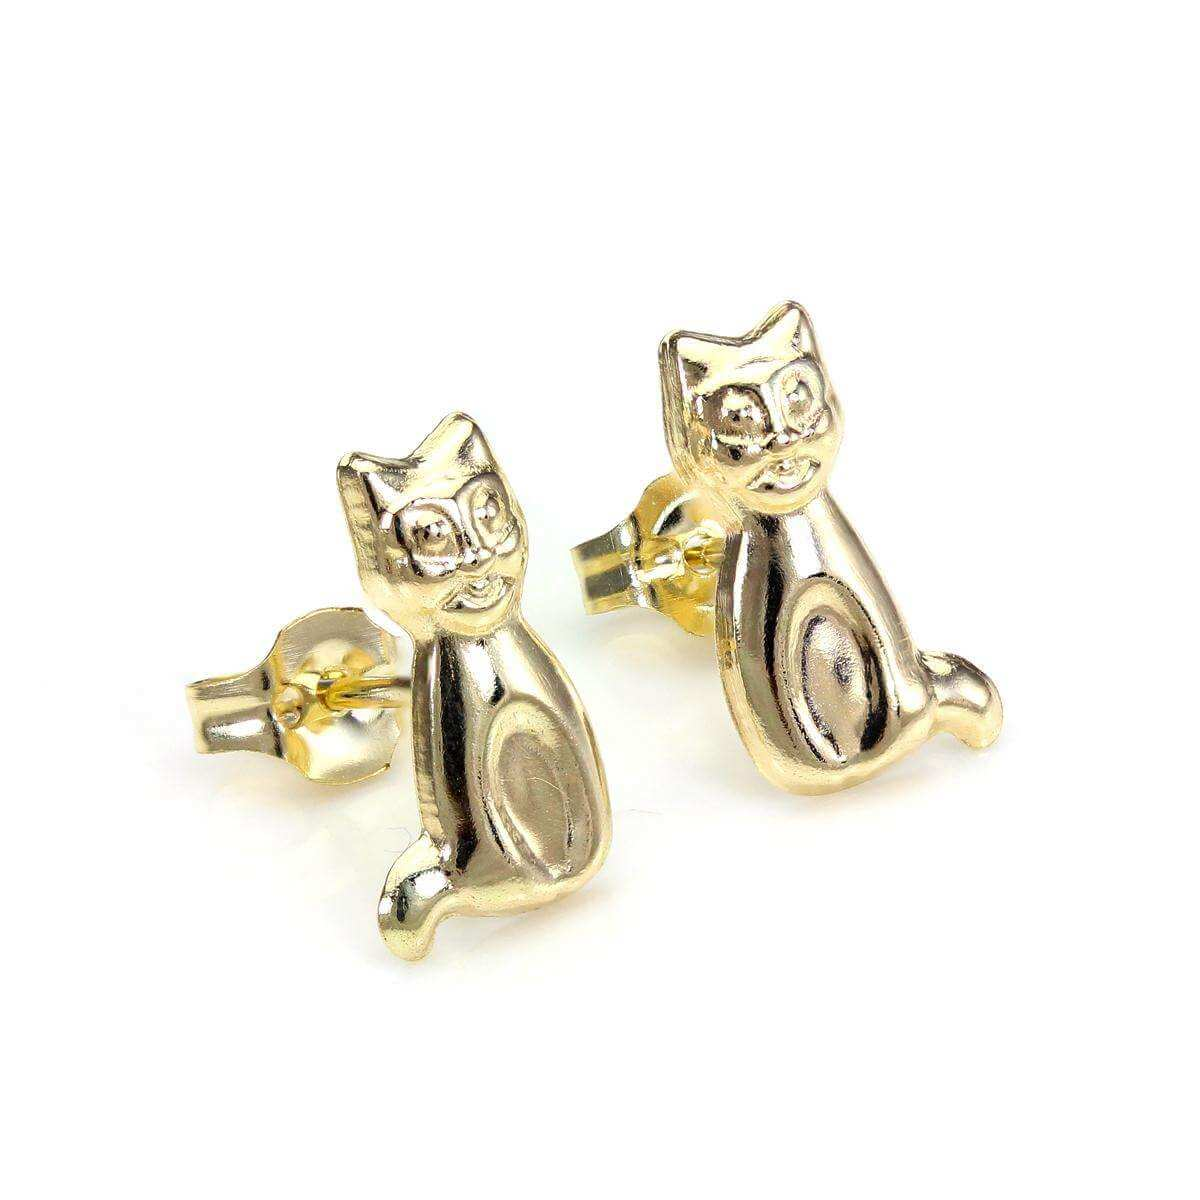 9ct Yellow Gold Sitting Cat Stud Earrings